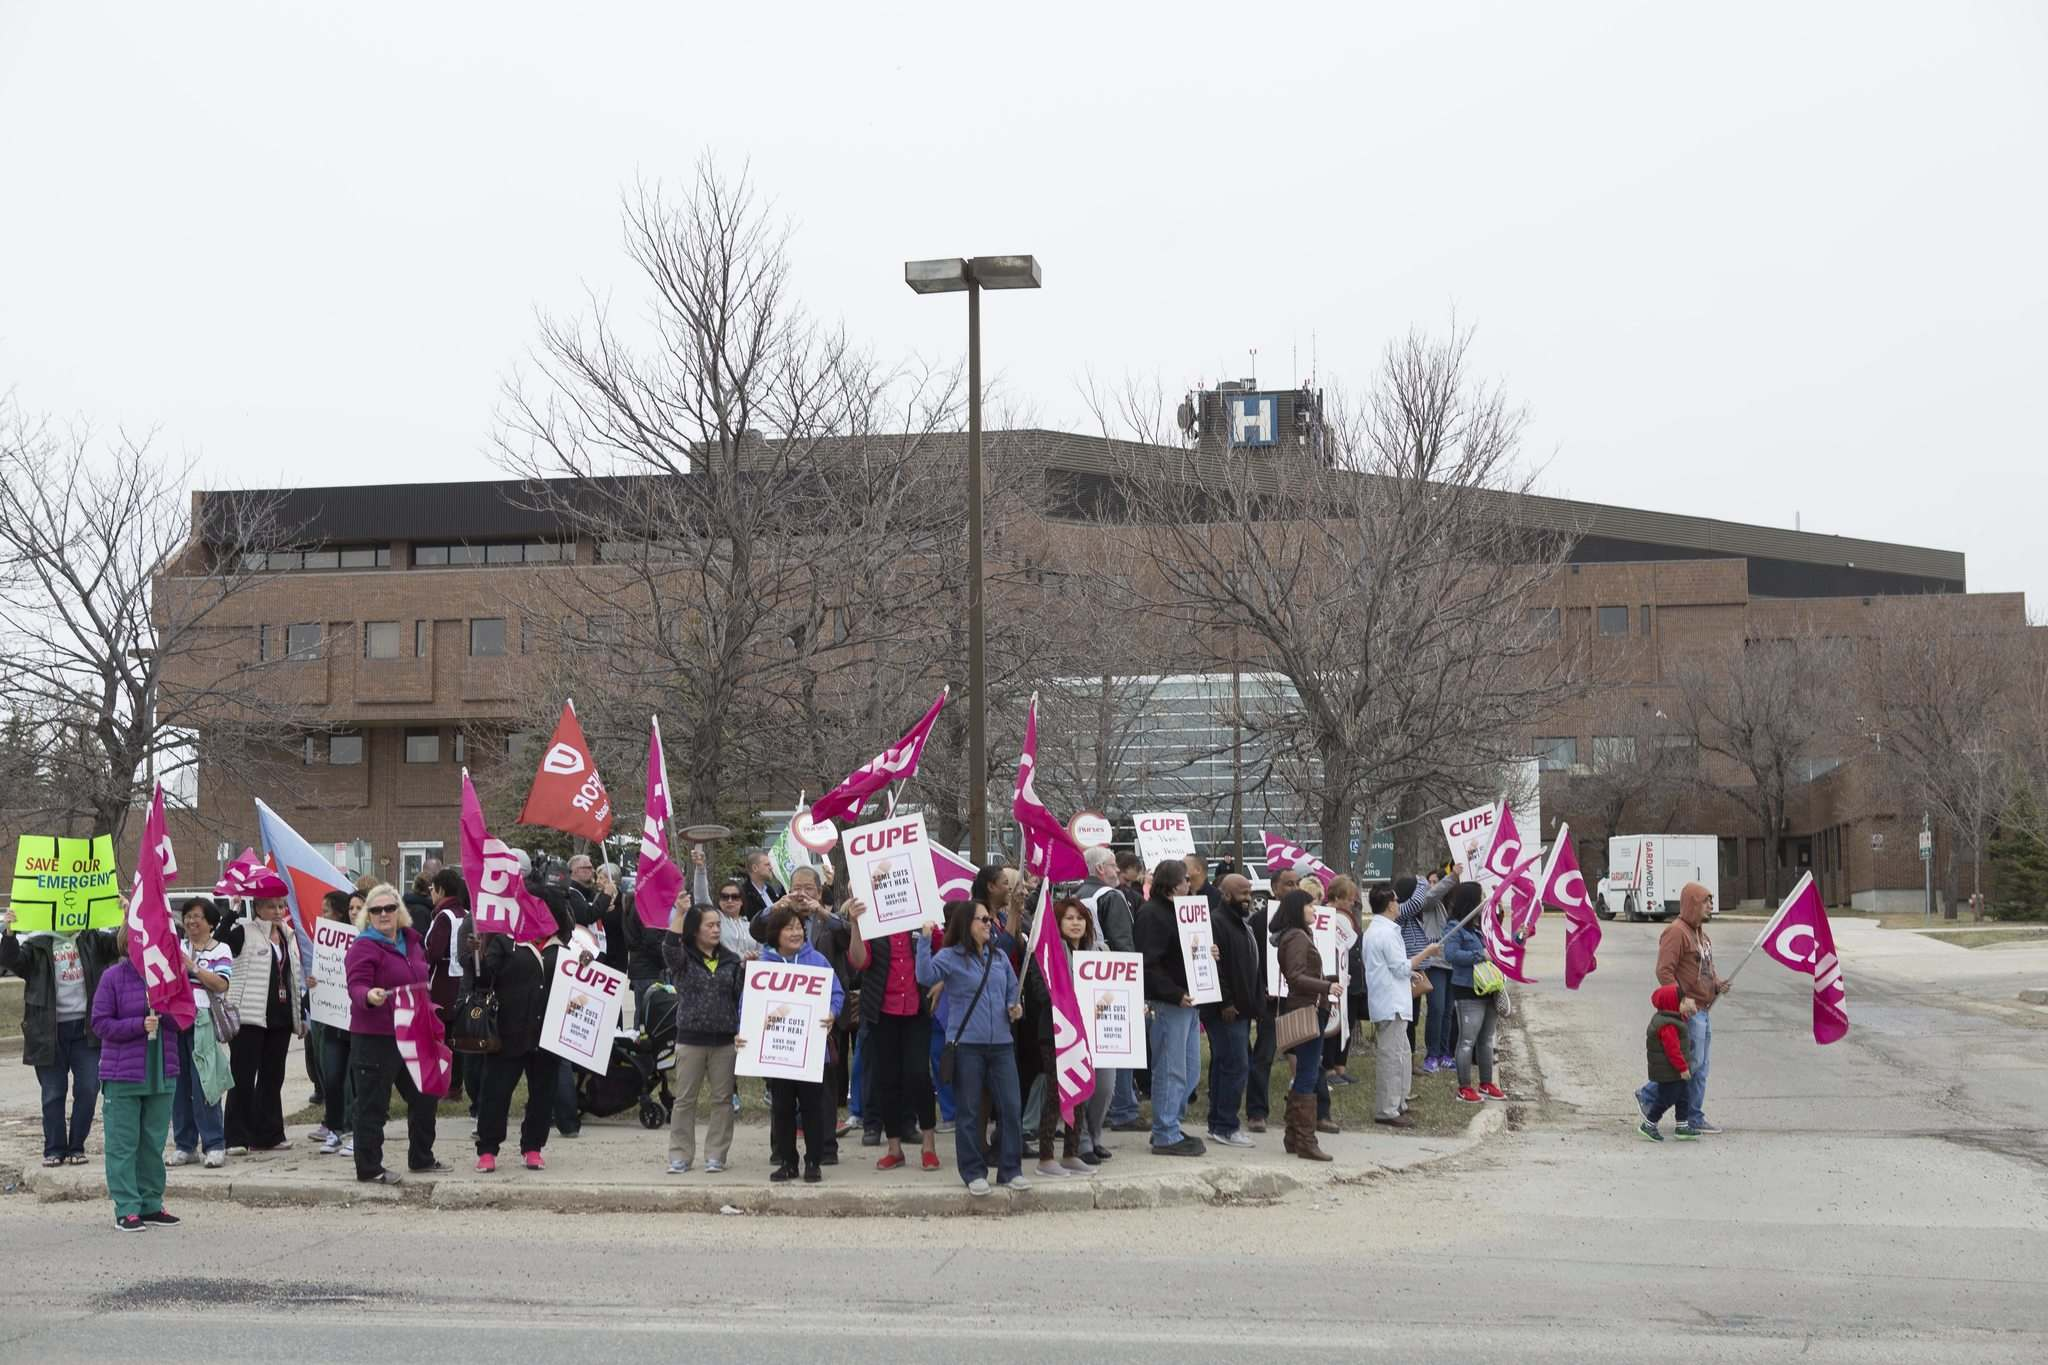 JEN DOERKSEN / WINNIPEG FREE PRESS FILES</p><p>After winning the election in April last year, Premier Brian Pallister had an opportunity to build bridges with public sector unions &mdash; an opportunity he did not take.</p>